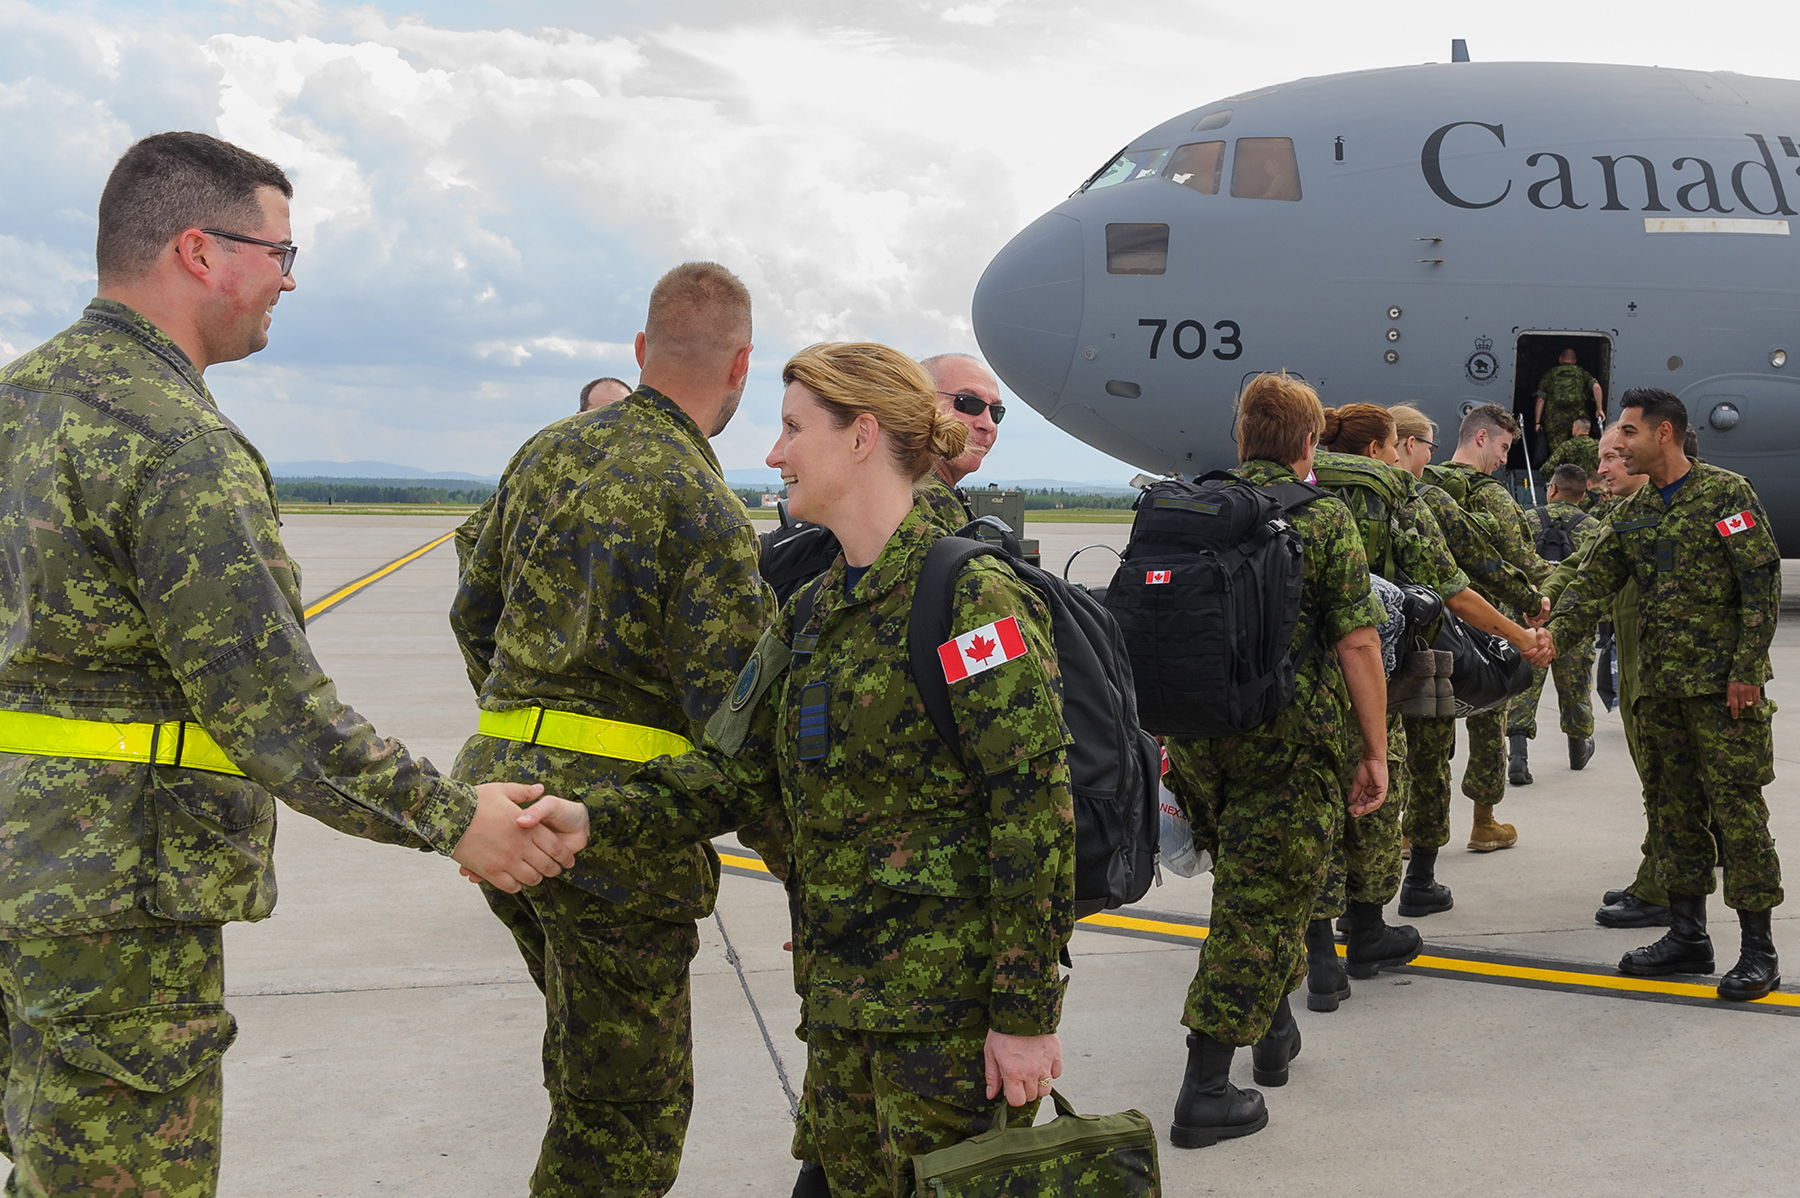 On August 11, 2017, Lieutenant-Colonel Julie Callacott, commander of 2 Wing Bagotville's Air Expeditionary Squadron and commander of the Airfield Activation Team in Romania, greets personnel who are deploying with her from CFB Bagotville, Québec, on Operation Reassurance. PHOTO: Private Mylène Bissonnette, BN10-2017-0484-010